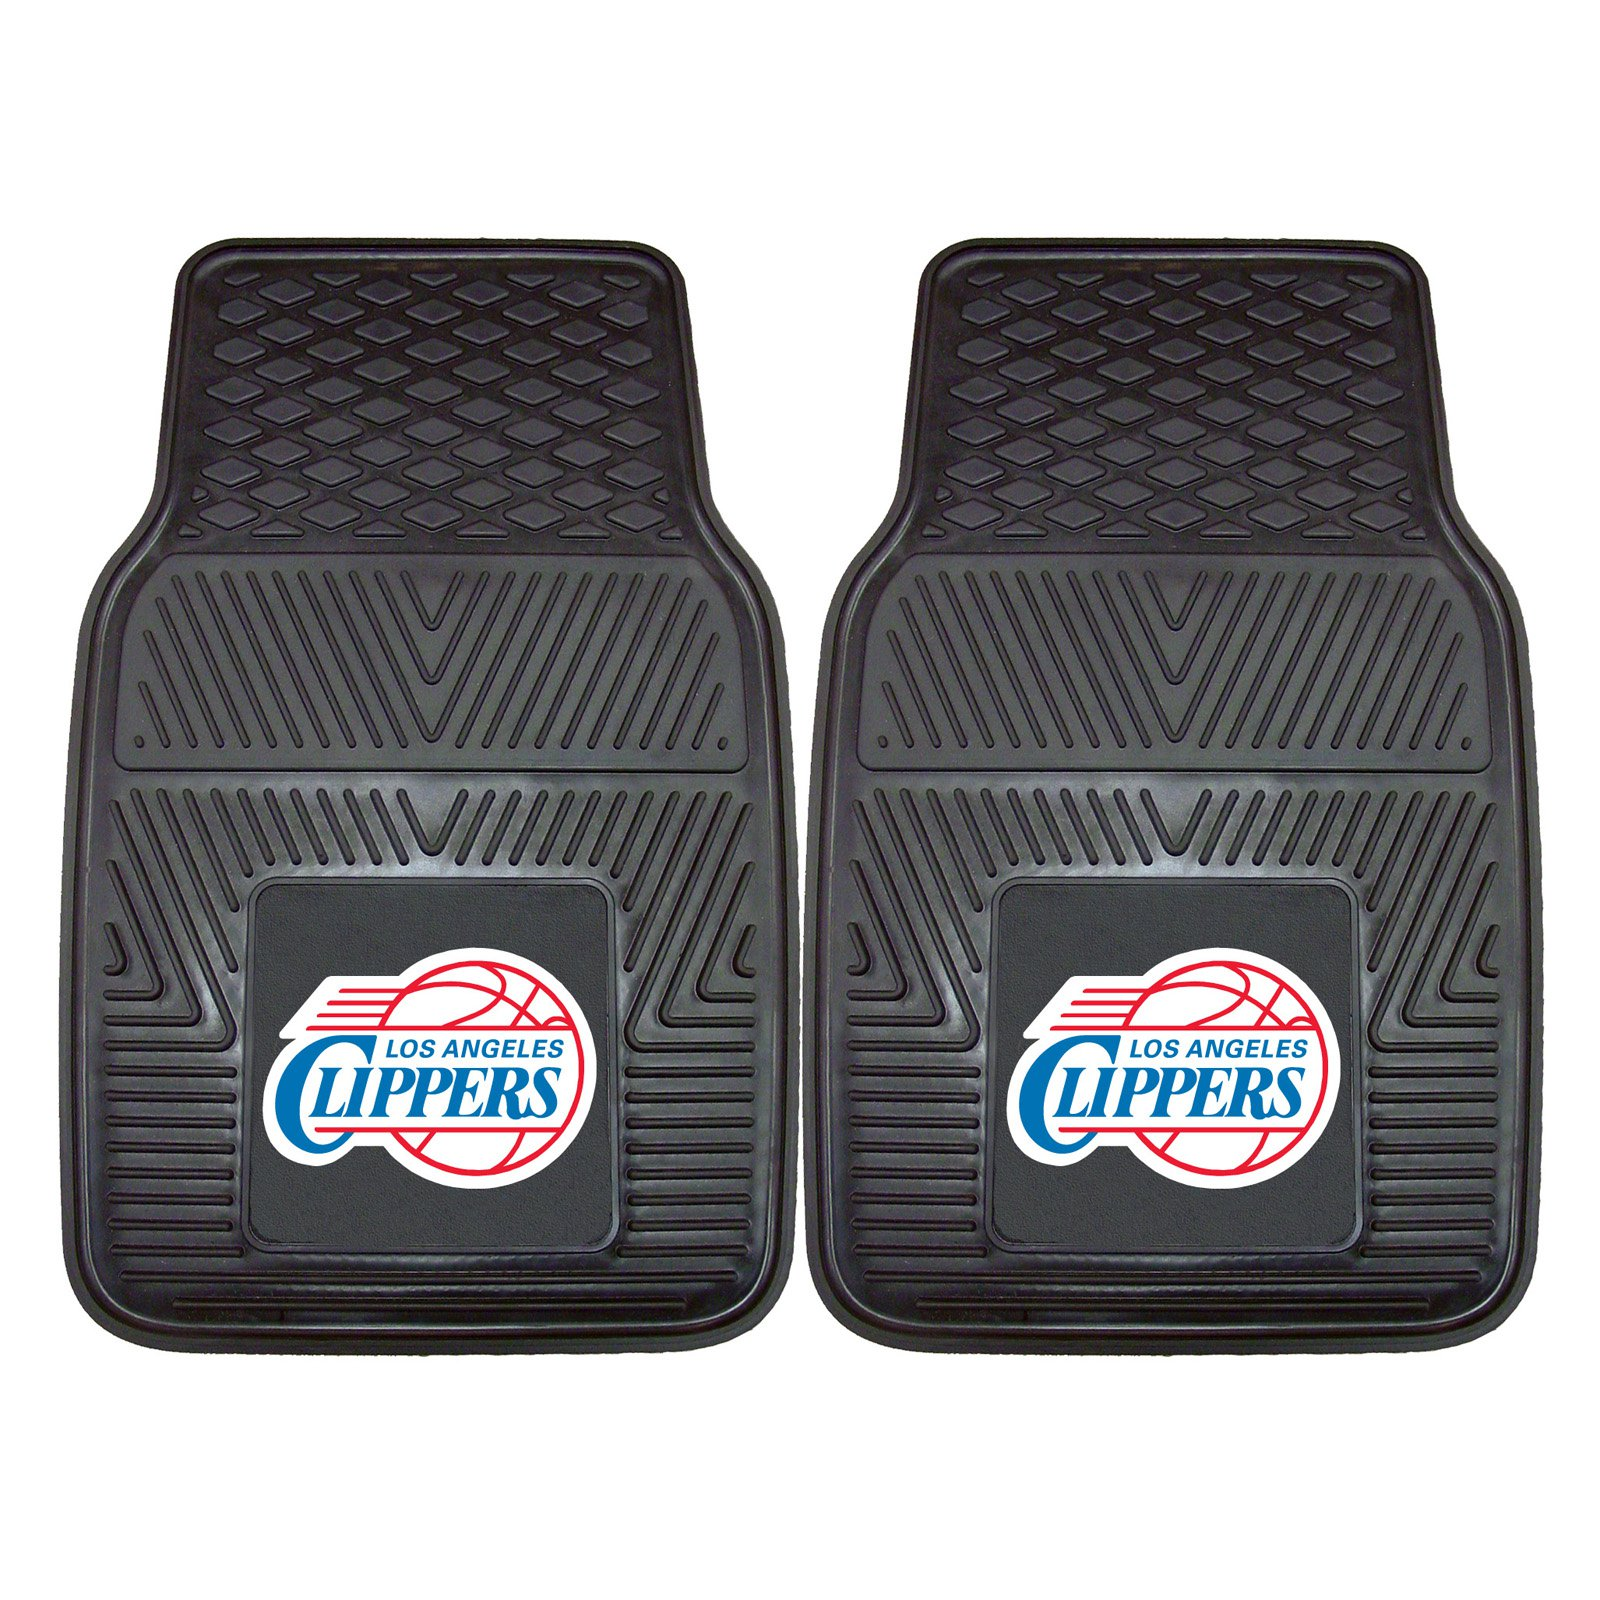 Los Angeles Clippers Heavy Duty Vinyl Car Mats - Set of 2